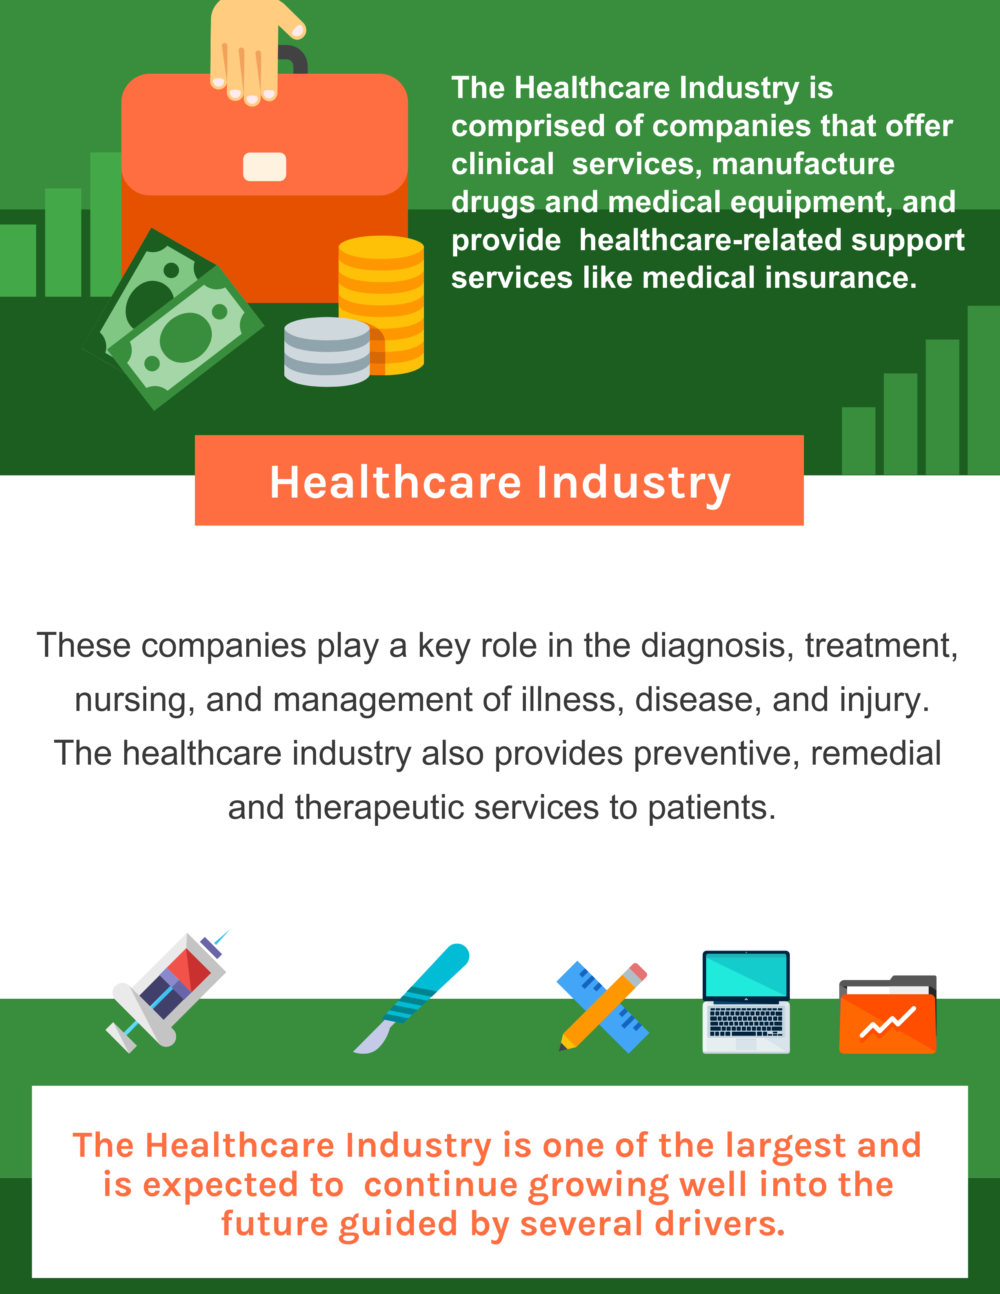 All About Healthcare Industry Key Segments, Value Chain, Needs and Competitive Advantage